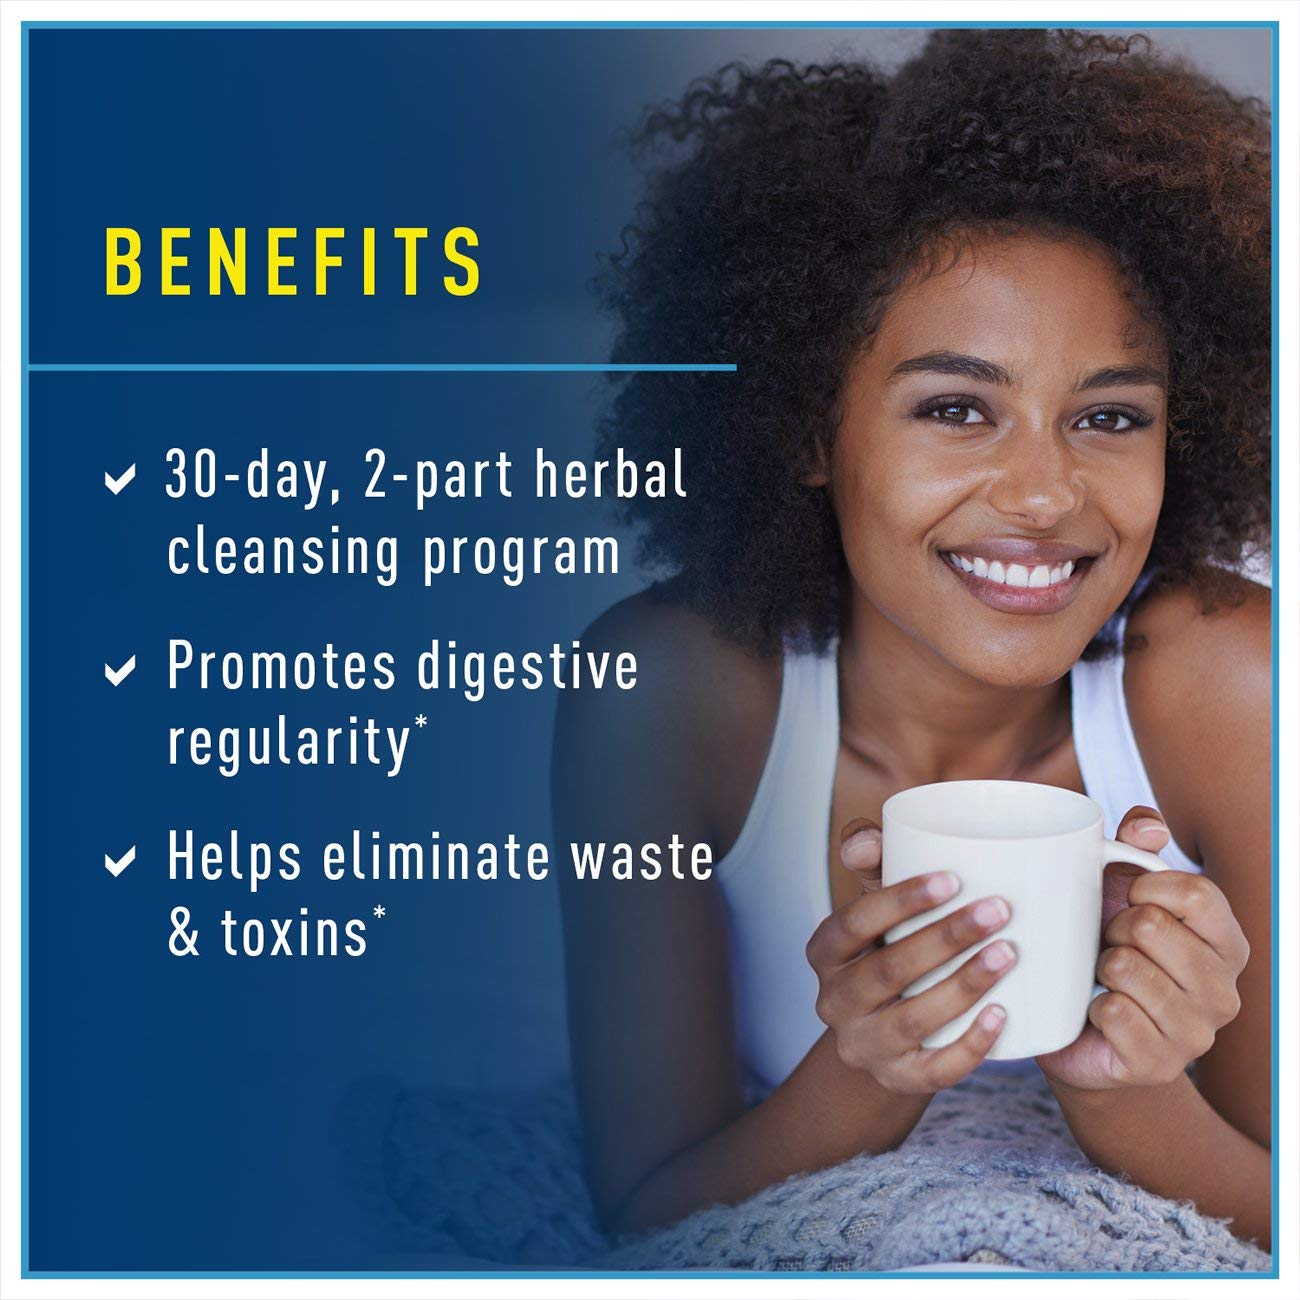 Renew Life Adult Cleanse - Smart Total Body Cleanse, Advanced - 2 Part, 30-Day Program - 120 Vegetable Capsules by Renew Life (Image #2)